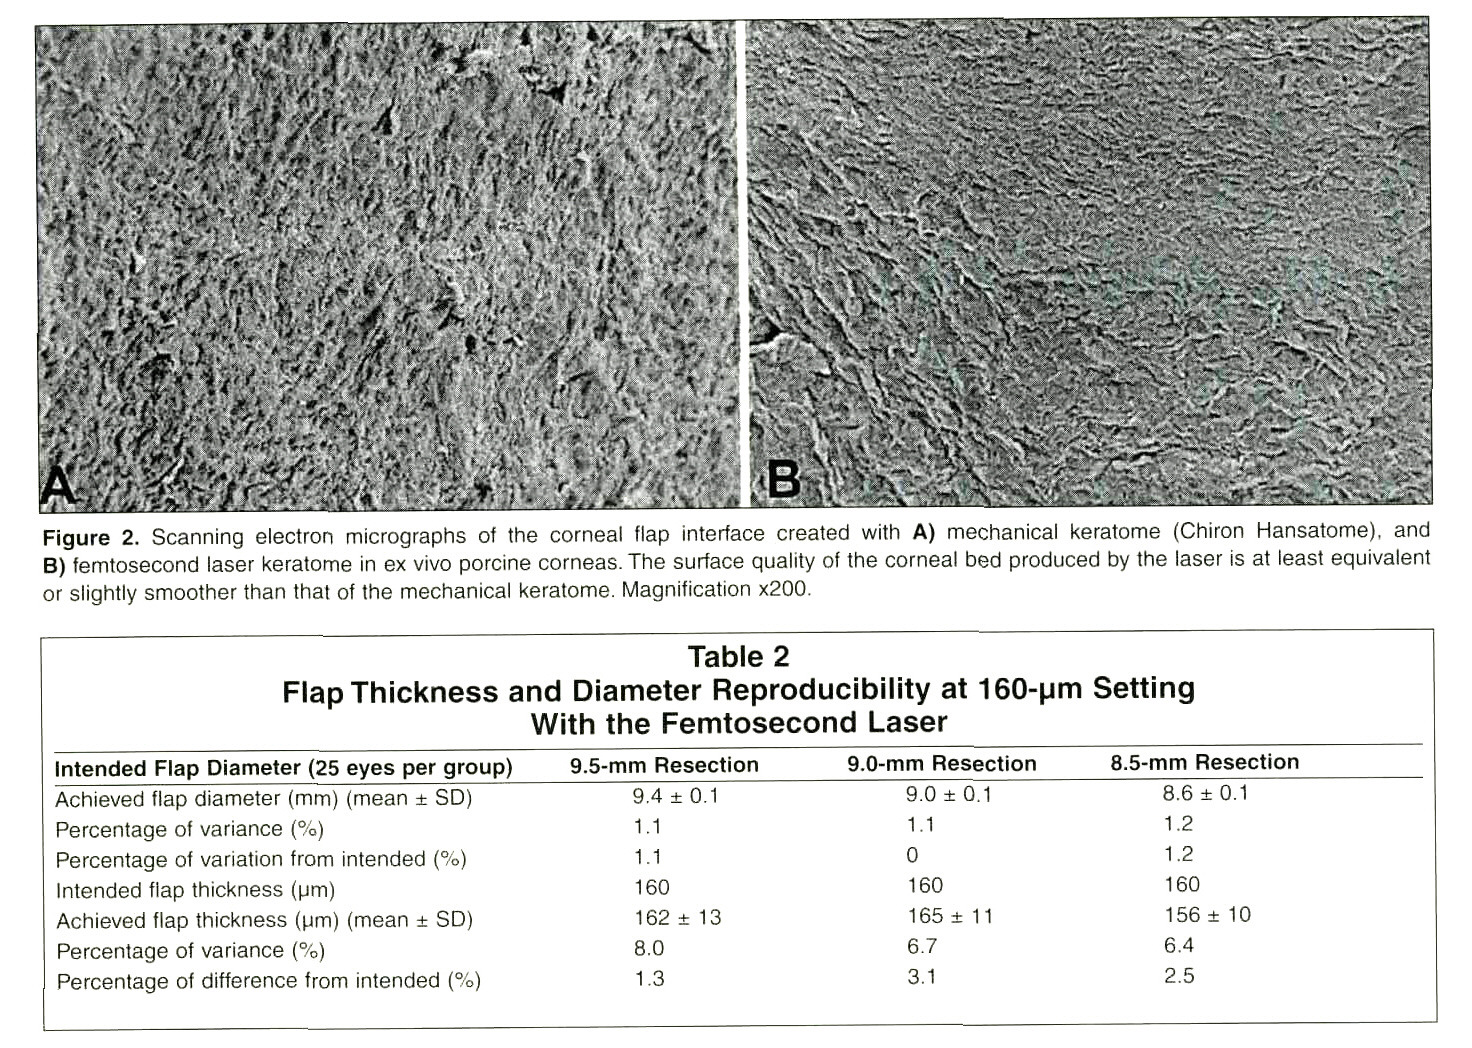 Figure 2. Scanning electron micrographs of the corneal flap interface created with A) mechanical keratome (Chiron Hansatome), and B) femtosecond laser keratome in ex vivo porcine corneas. The surface quality of the corneal bed produced by the laser is at least equivalent or slightly smoother than that of the mechanical keratome. Magnification x200.Table 2Flap Thickness and Diameter Reproducibility at 160-pm Setting With the Femtosecond Laser